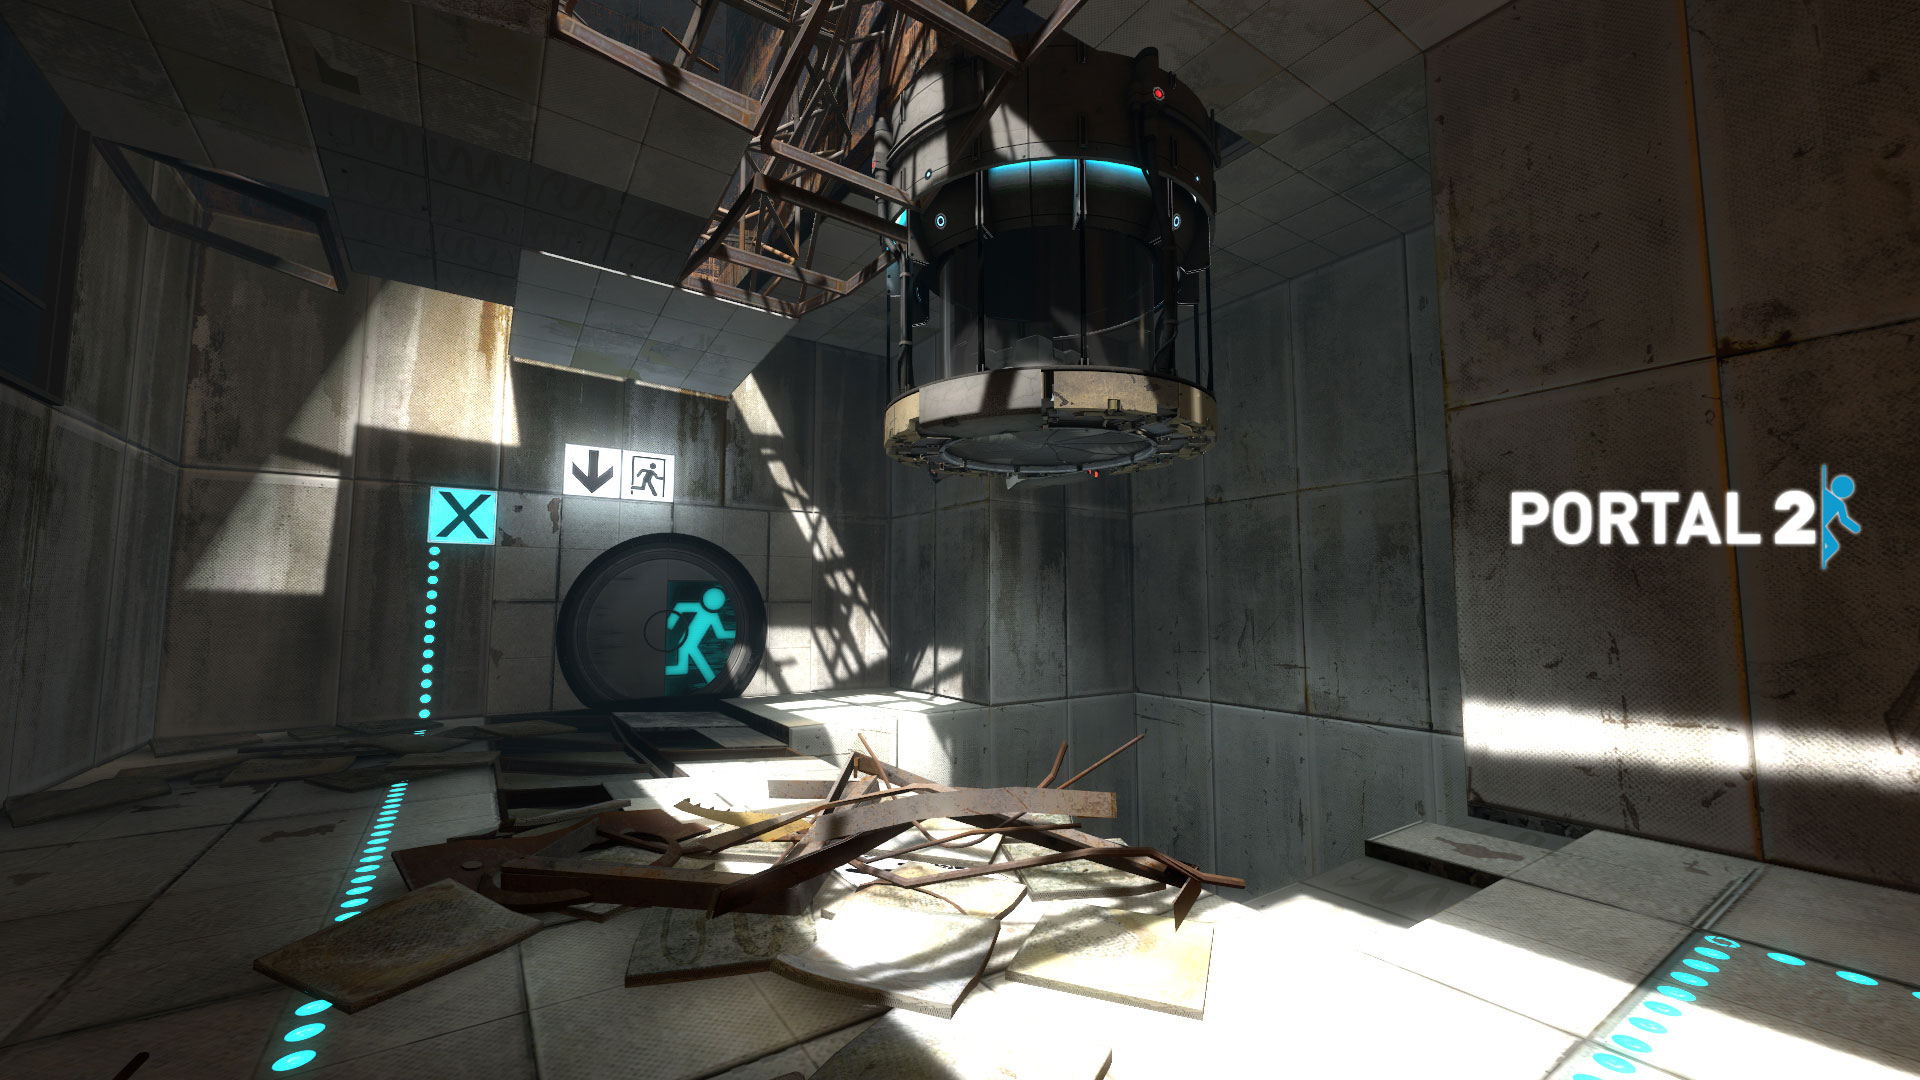 Portal 2 Wallpapers in HD High Resolution Page 5 1920x1080